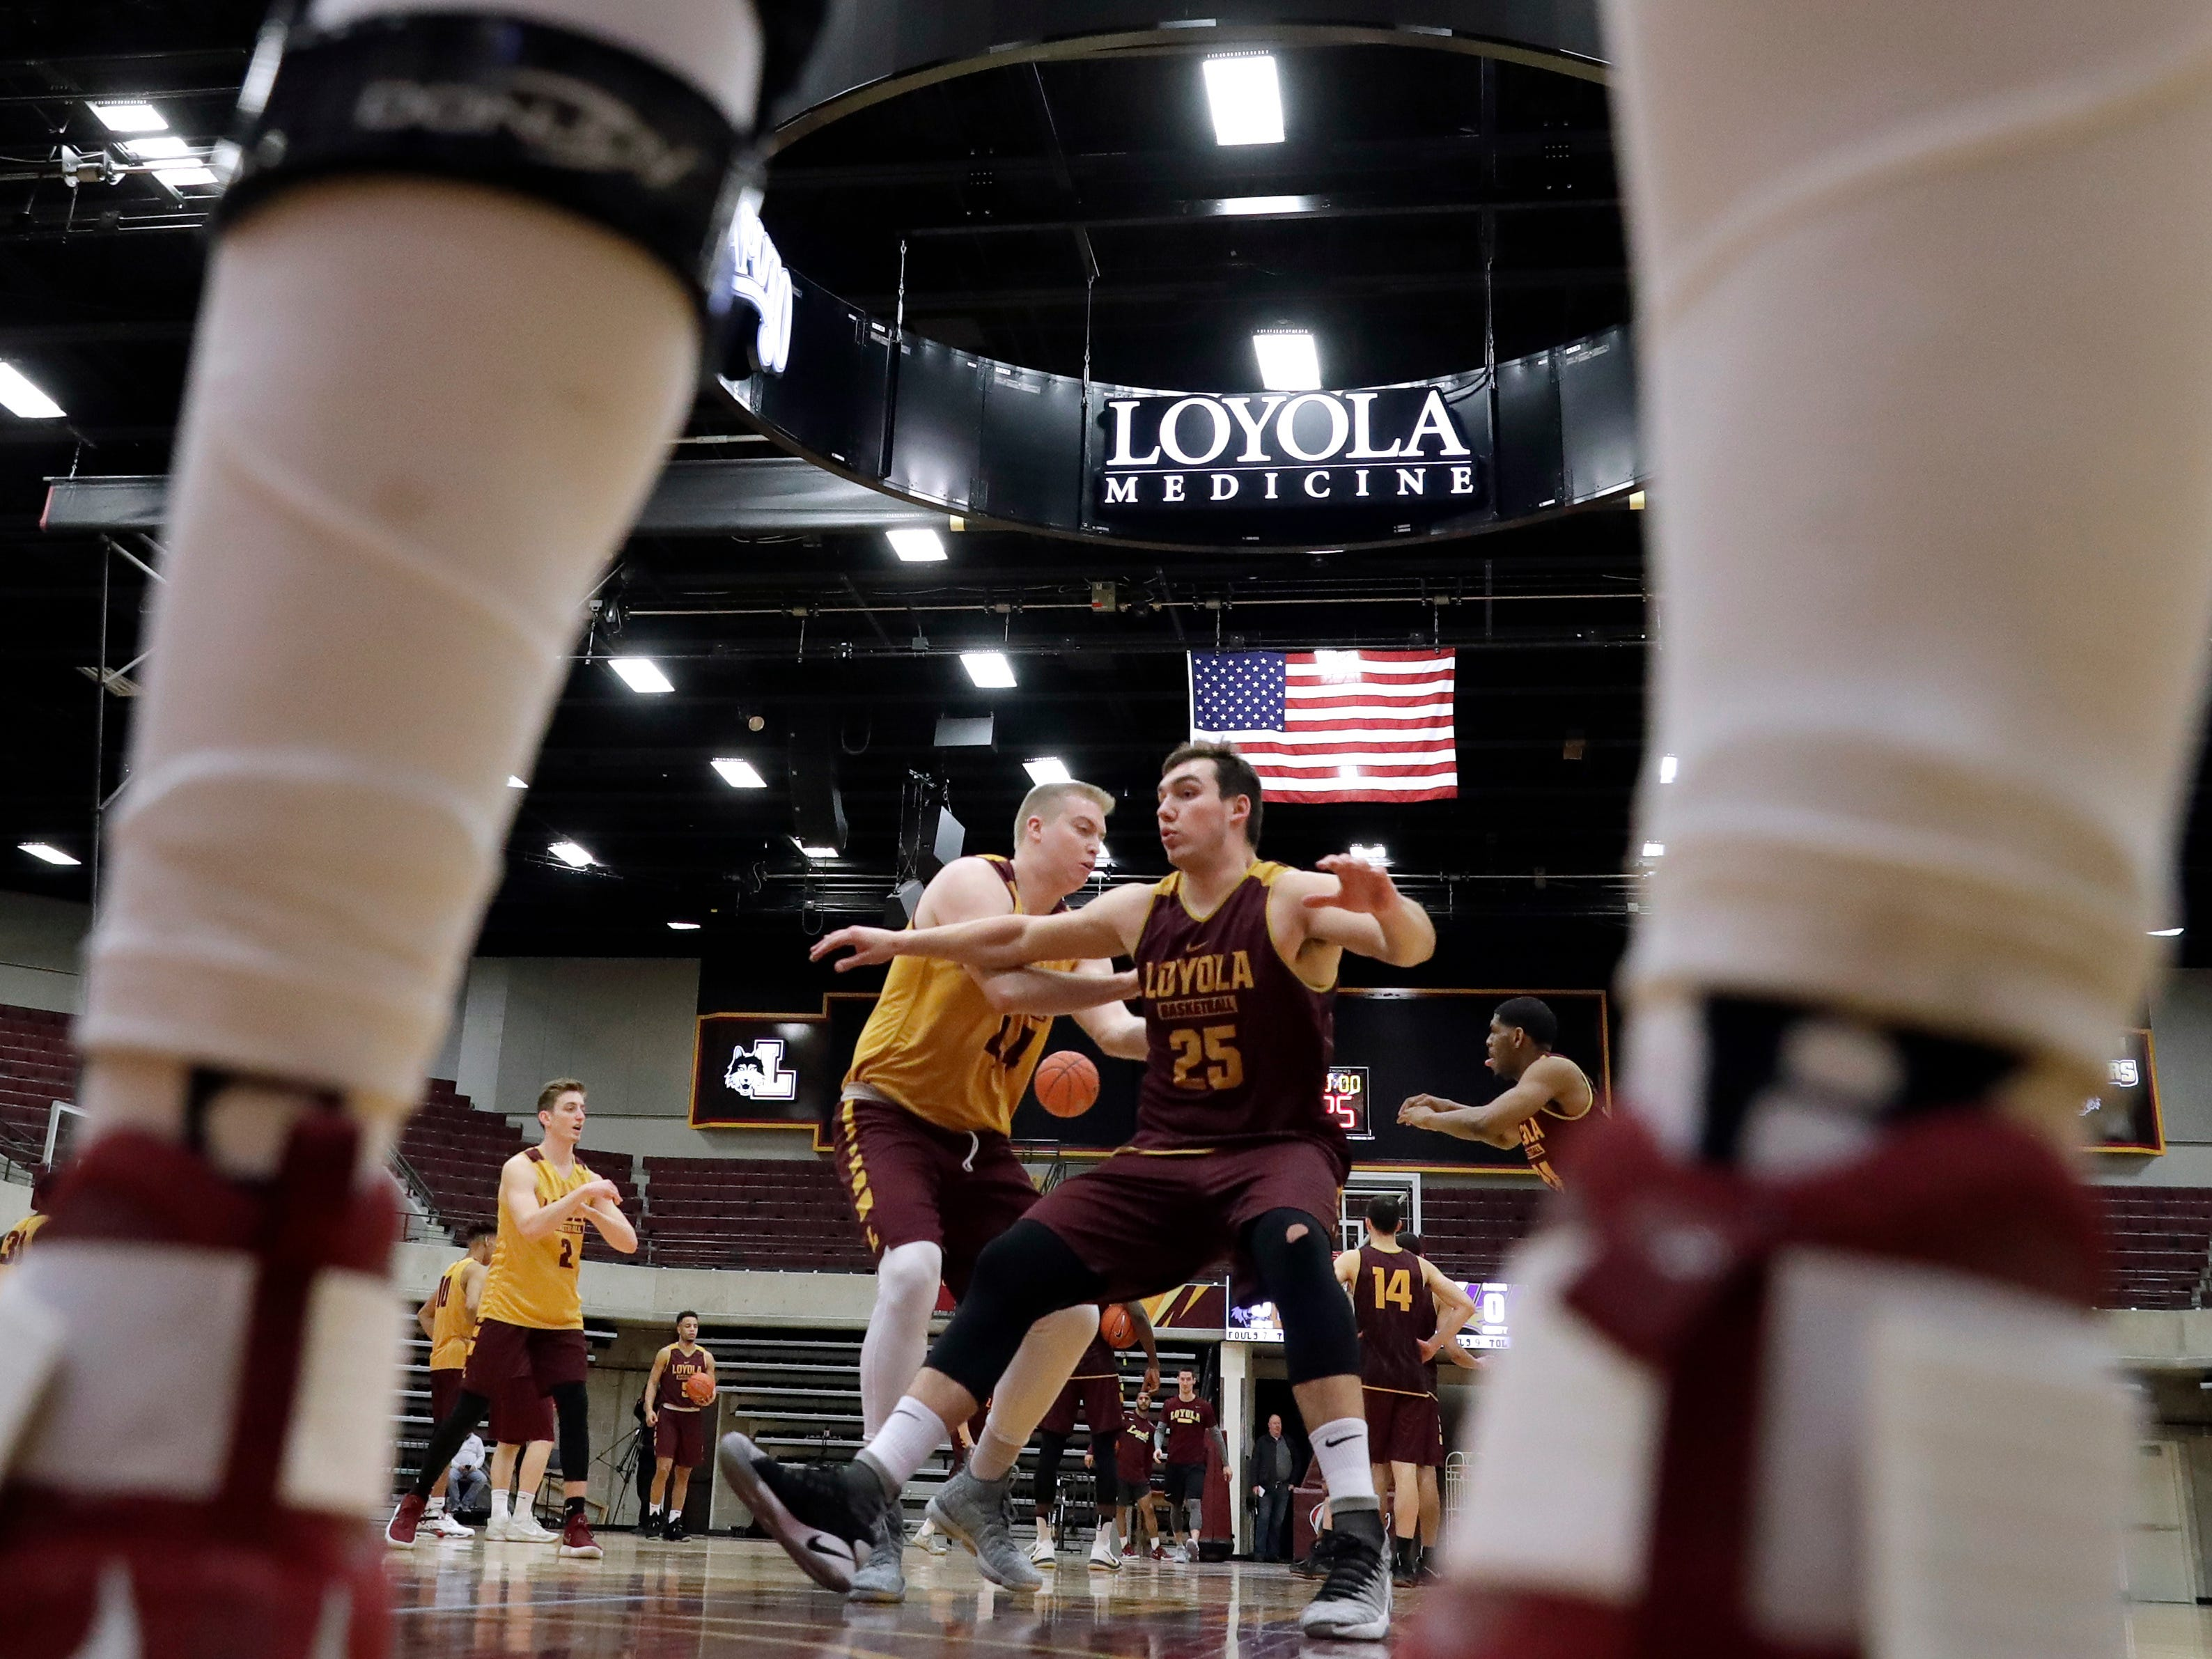 Loyola center Cameron Krutwig, right, works with forward Nick DiNardi during NCAA college basketball practice in Chicago, Friday, March 9, 2018. Loyola locks up 1st March Madness appearance in 33 years. (AP Photo/Nam Y. Huh)